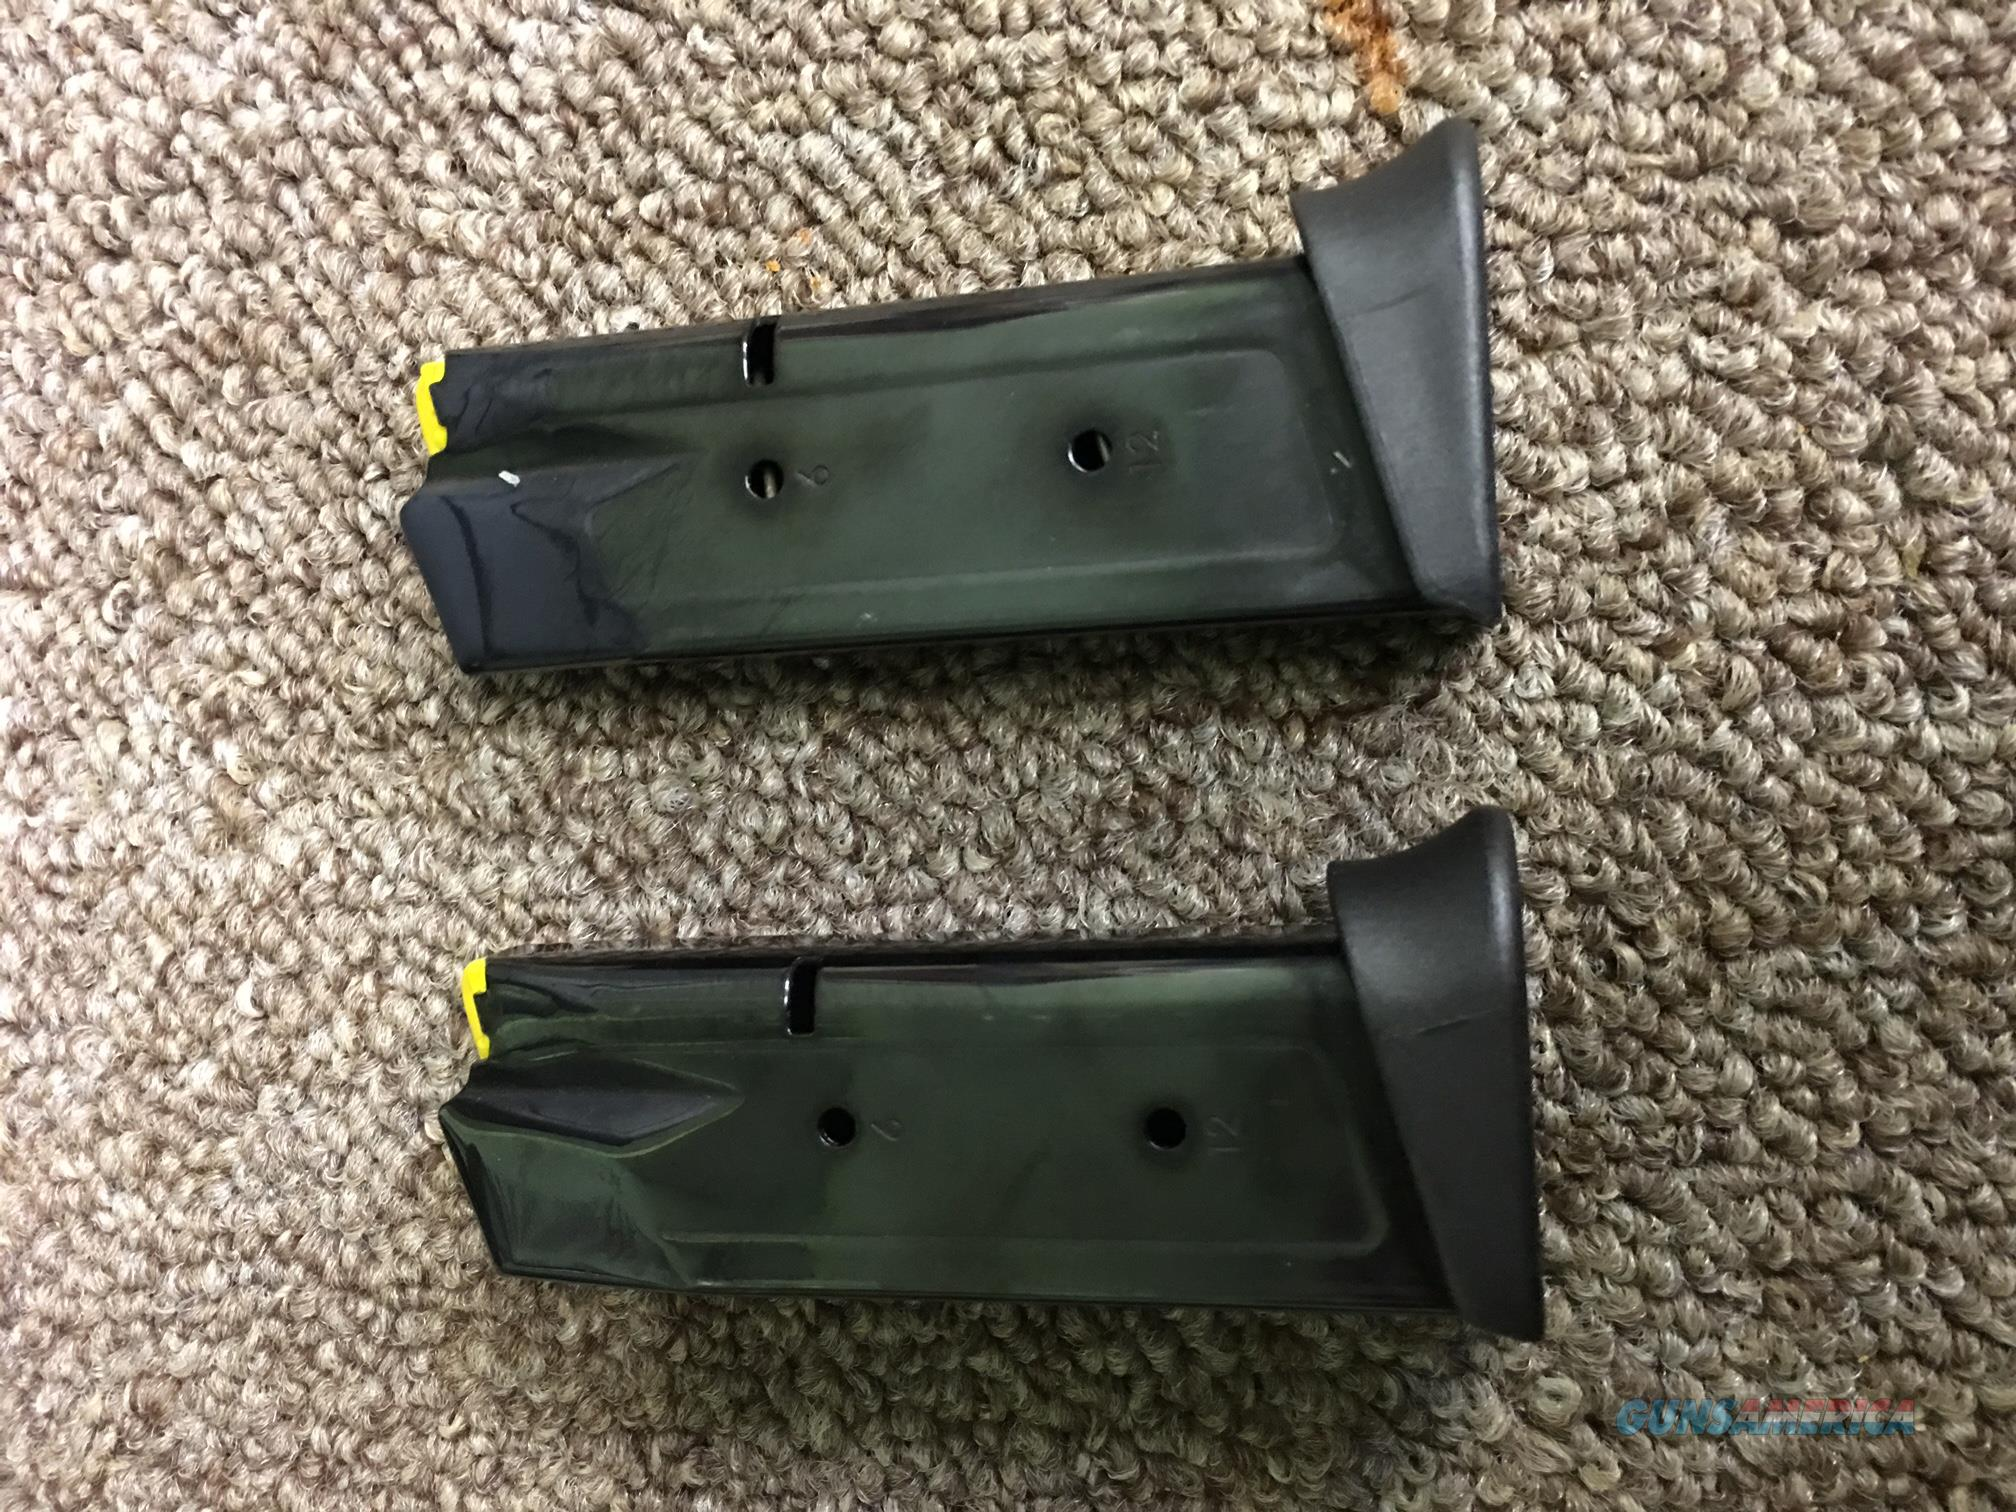 SET OF 2 TAURUS PT111 G2 9MM 12 ROUND FACTORY MAGAZINES FREE SHIPPING   Non-Guns > Magazines & Clips > Pistol Magazines > Other